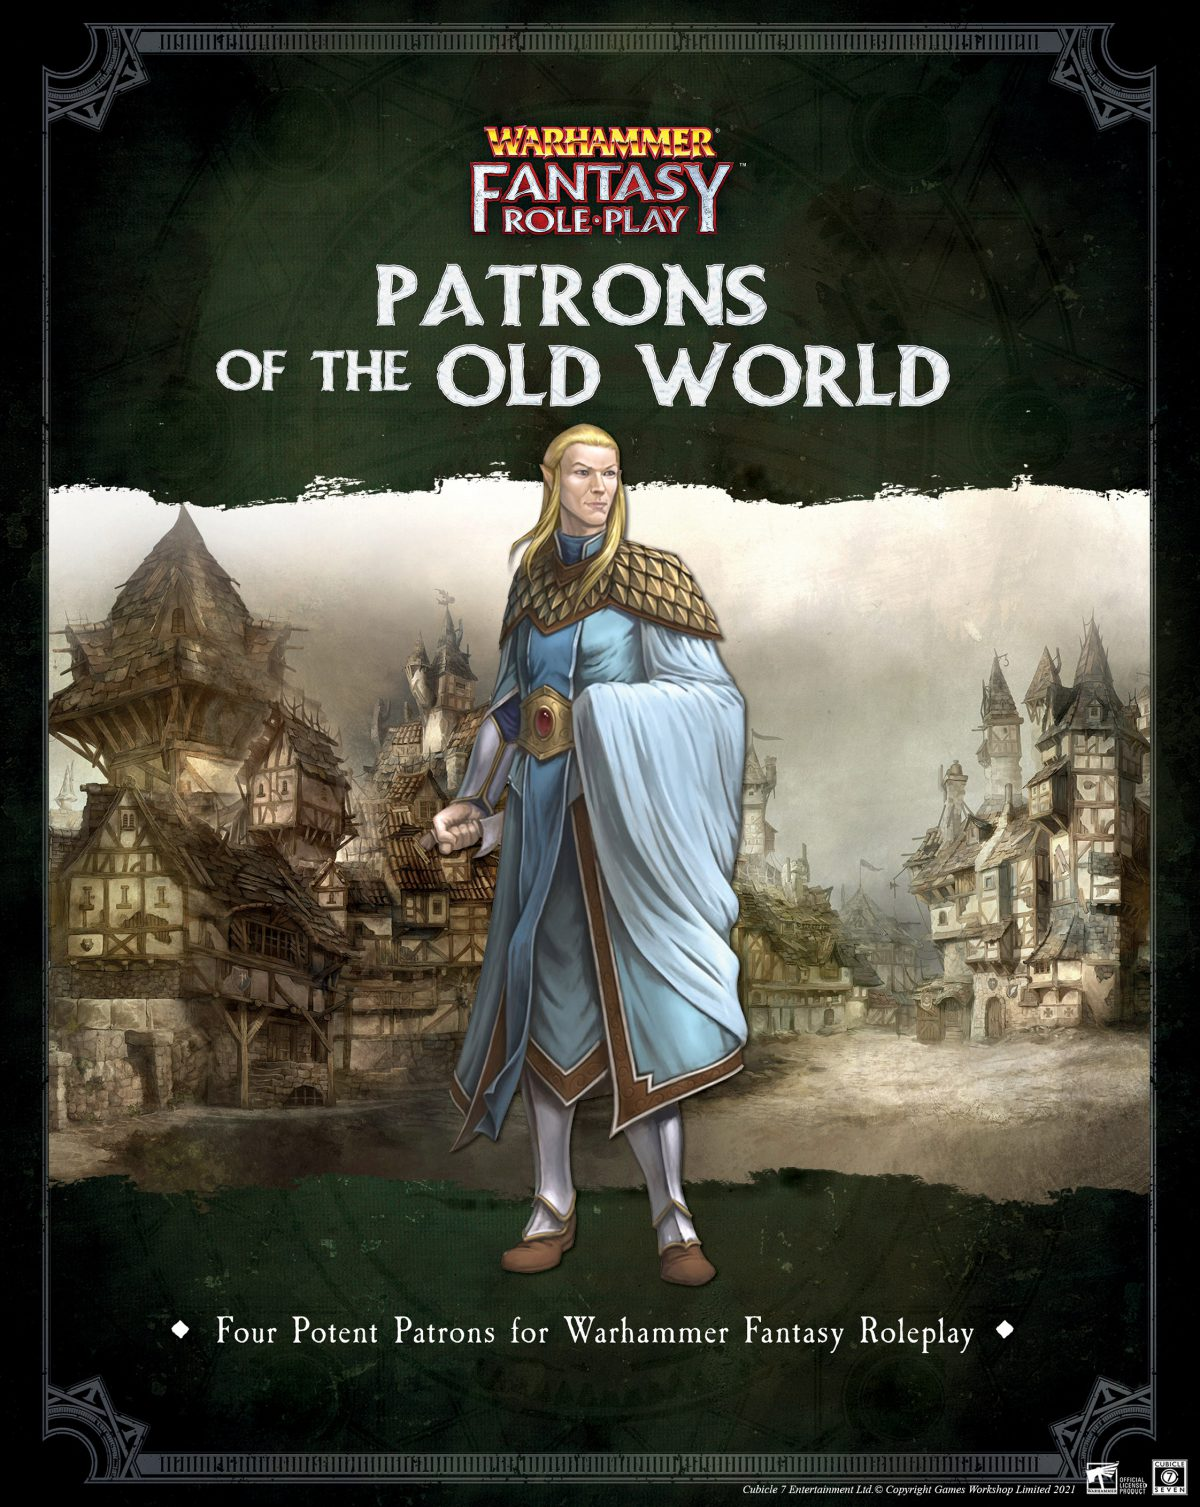 Patrons Of The Old World - Warhammer Fantasy Role-Play